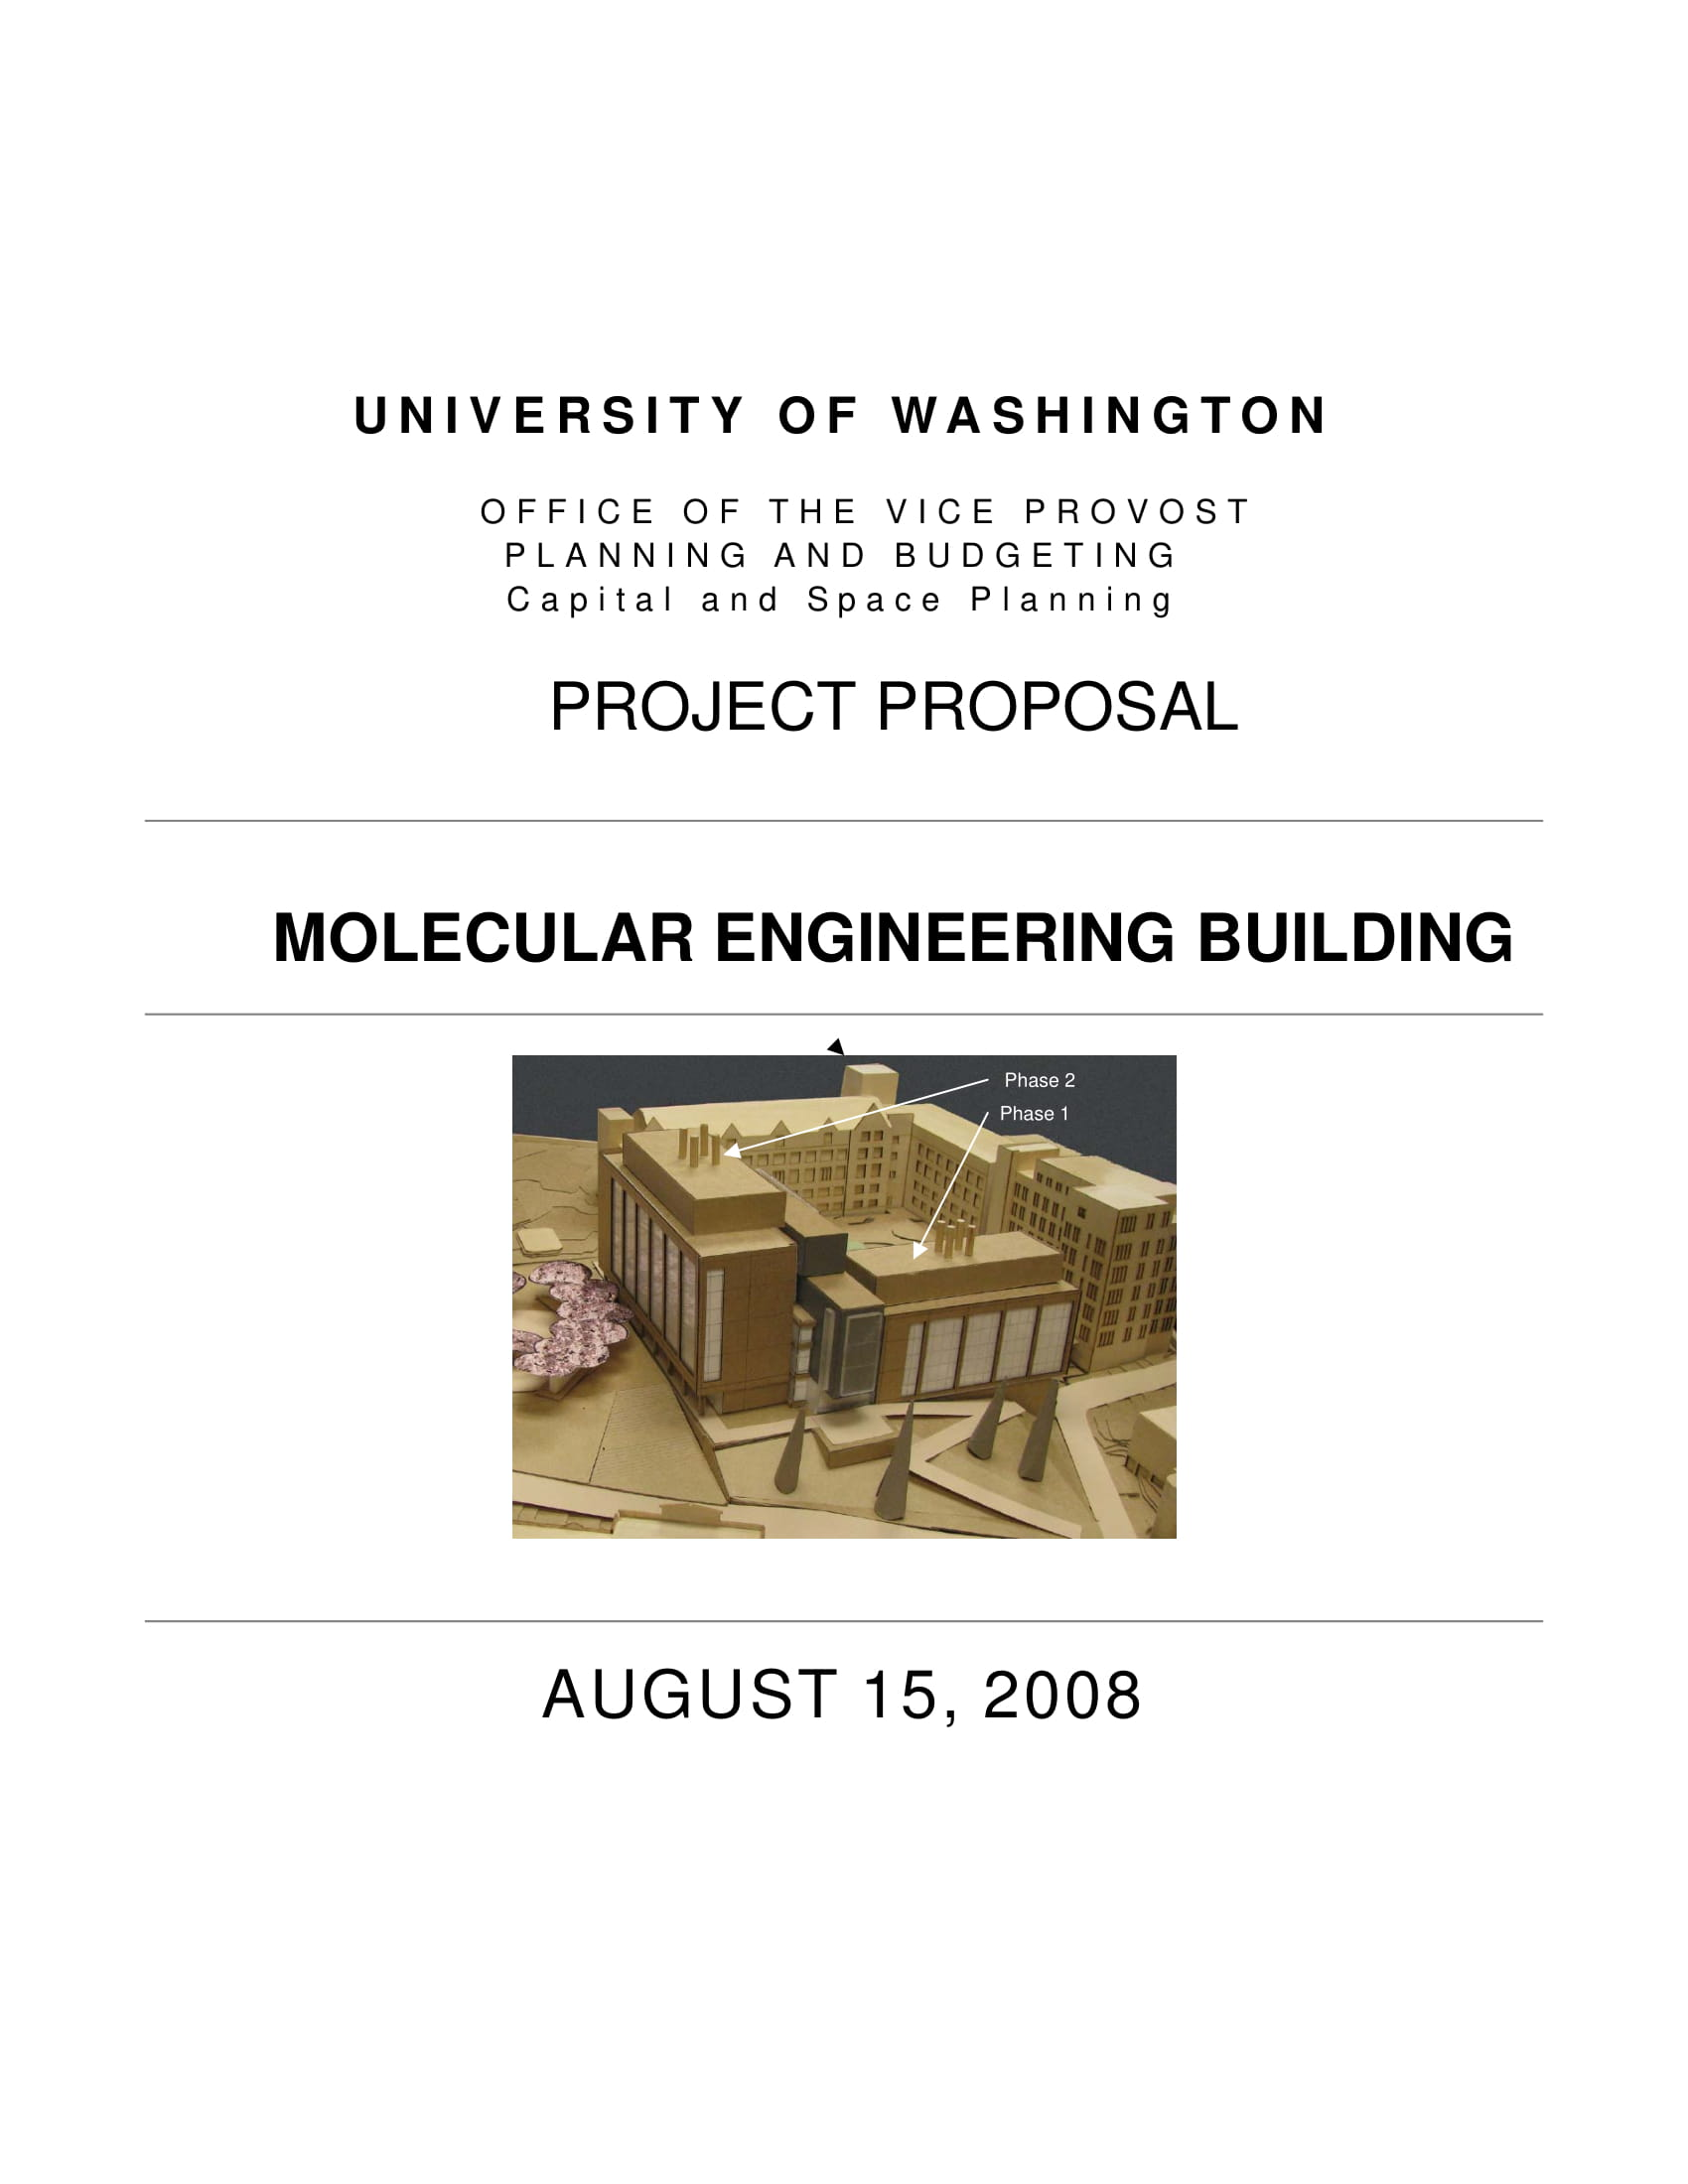 molecular engineering capital project proposal example